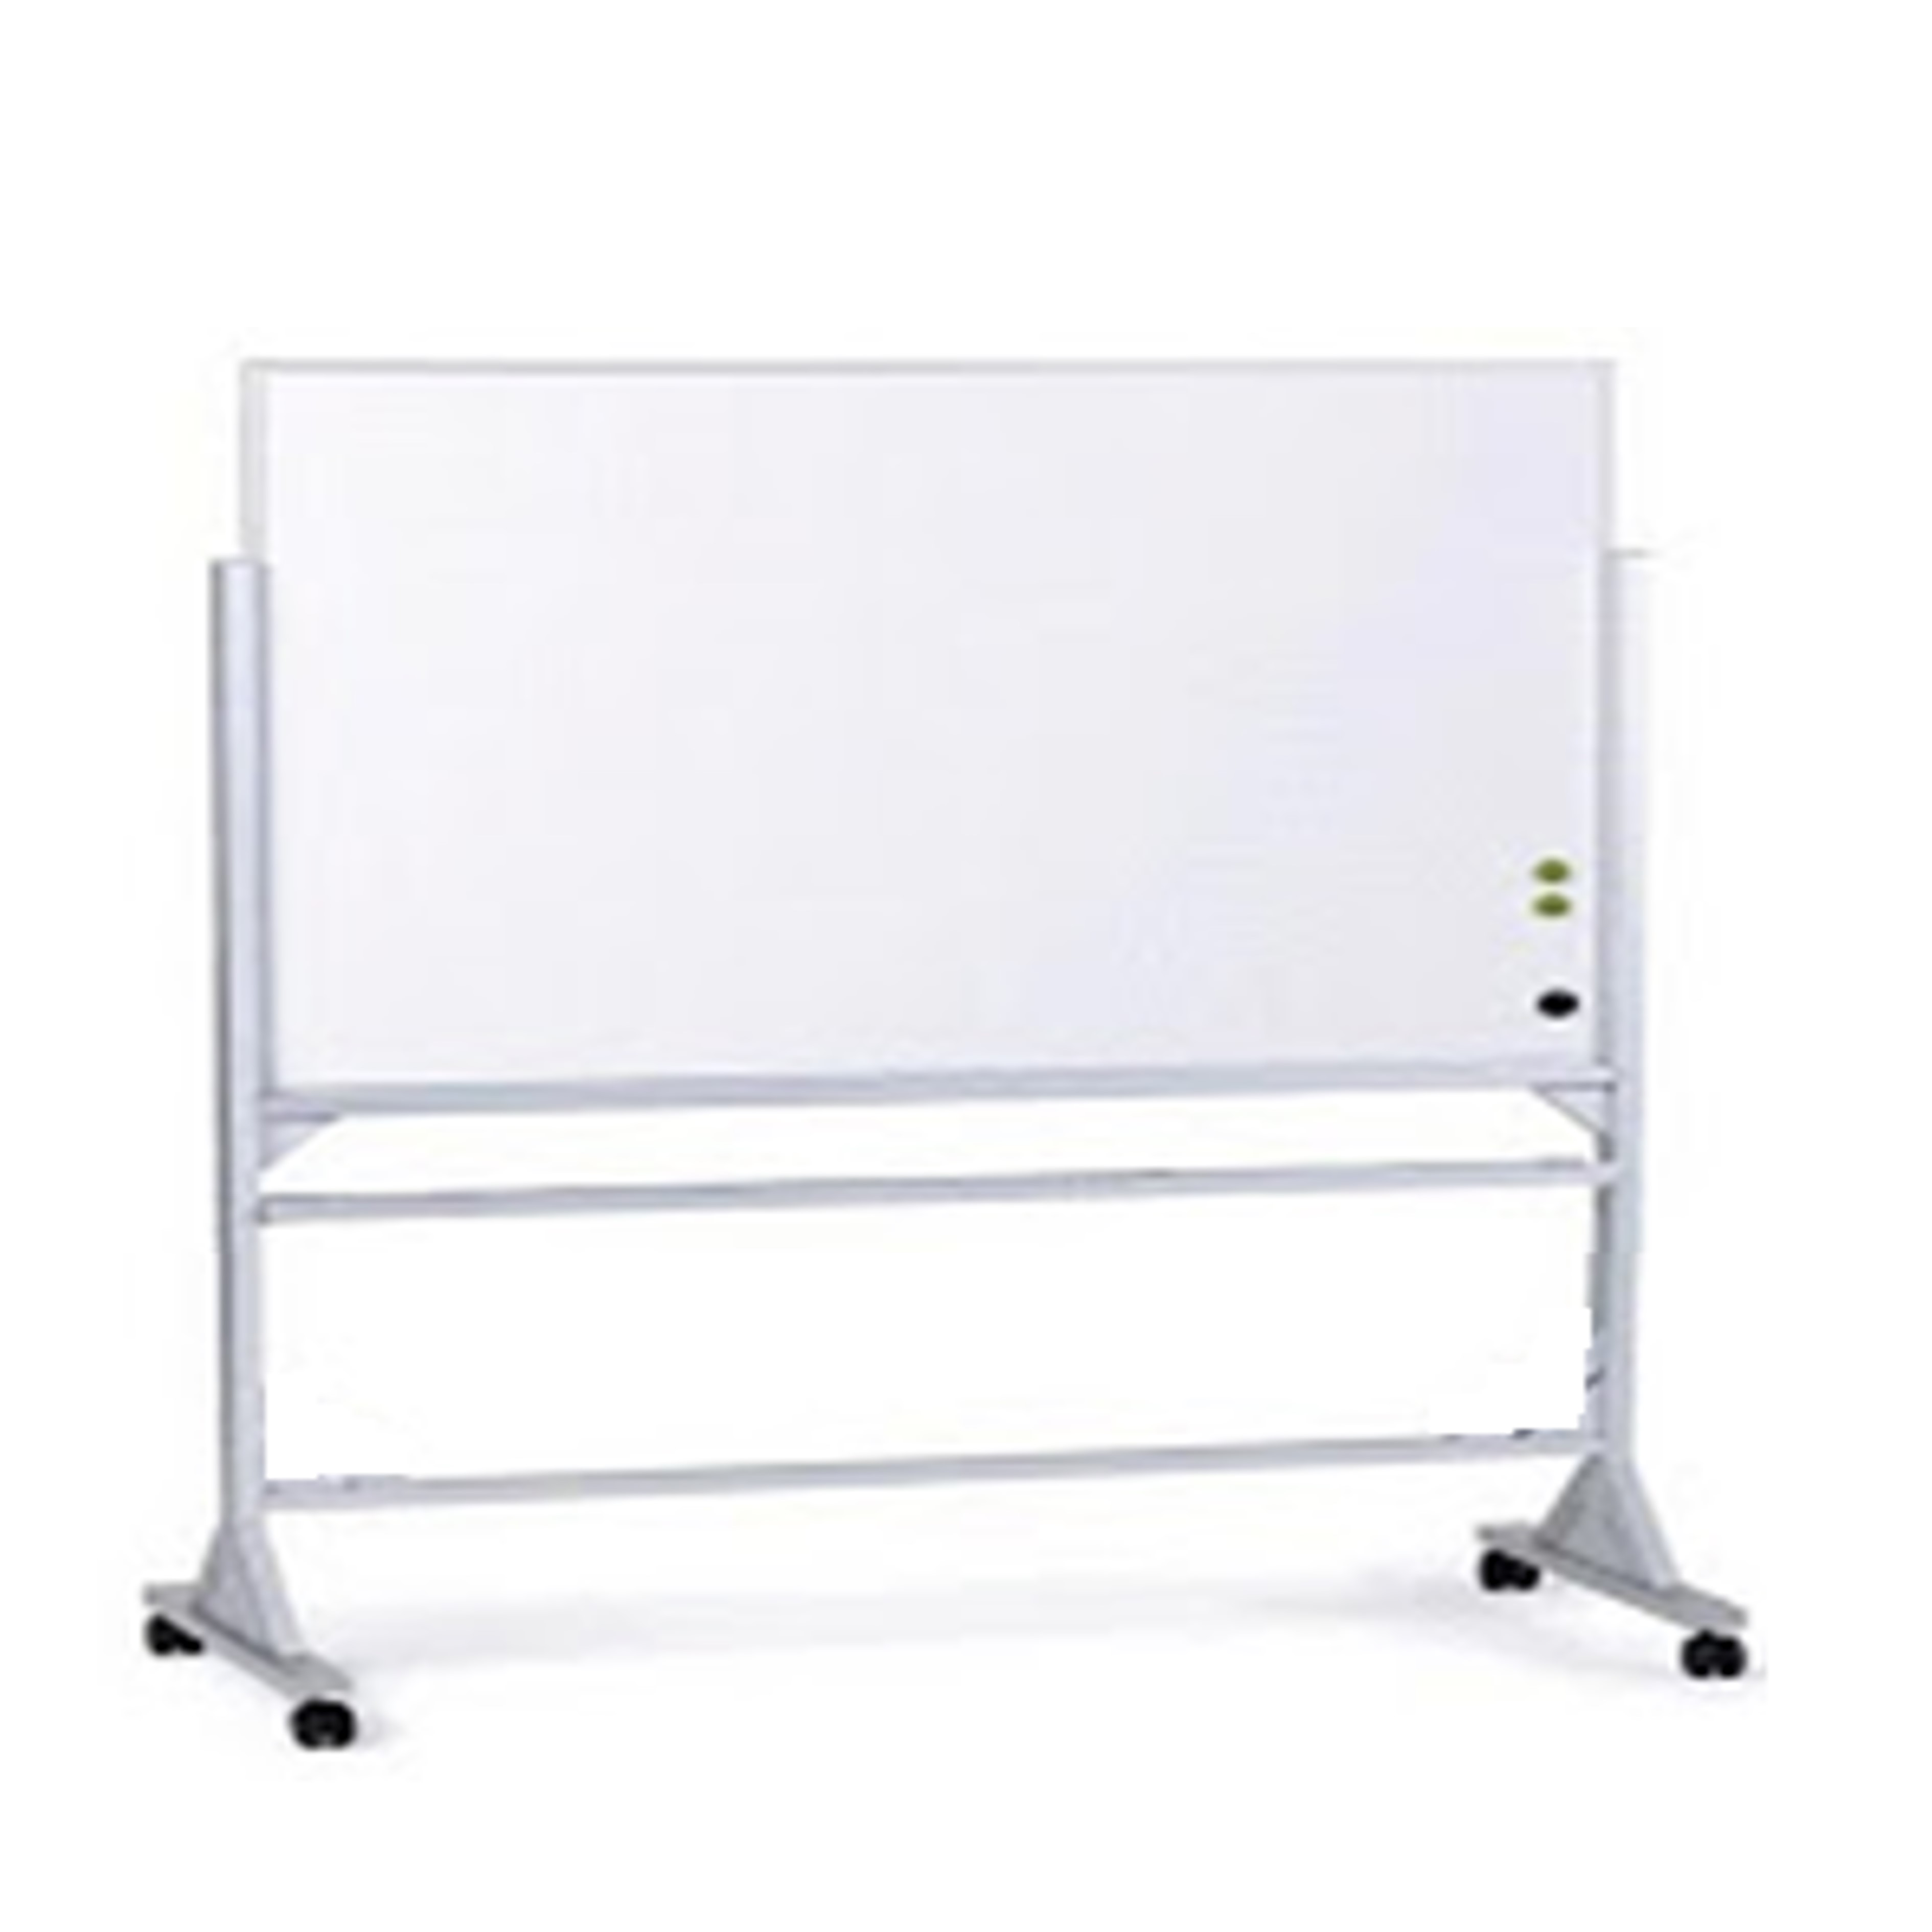 kids mobile magnetic whiteboard gaviton events. Black Bedroom Furniture Sets. Home Design Ideas